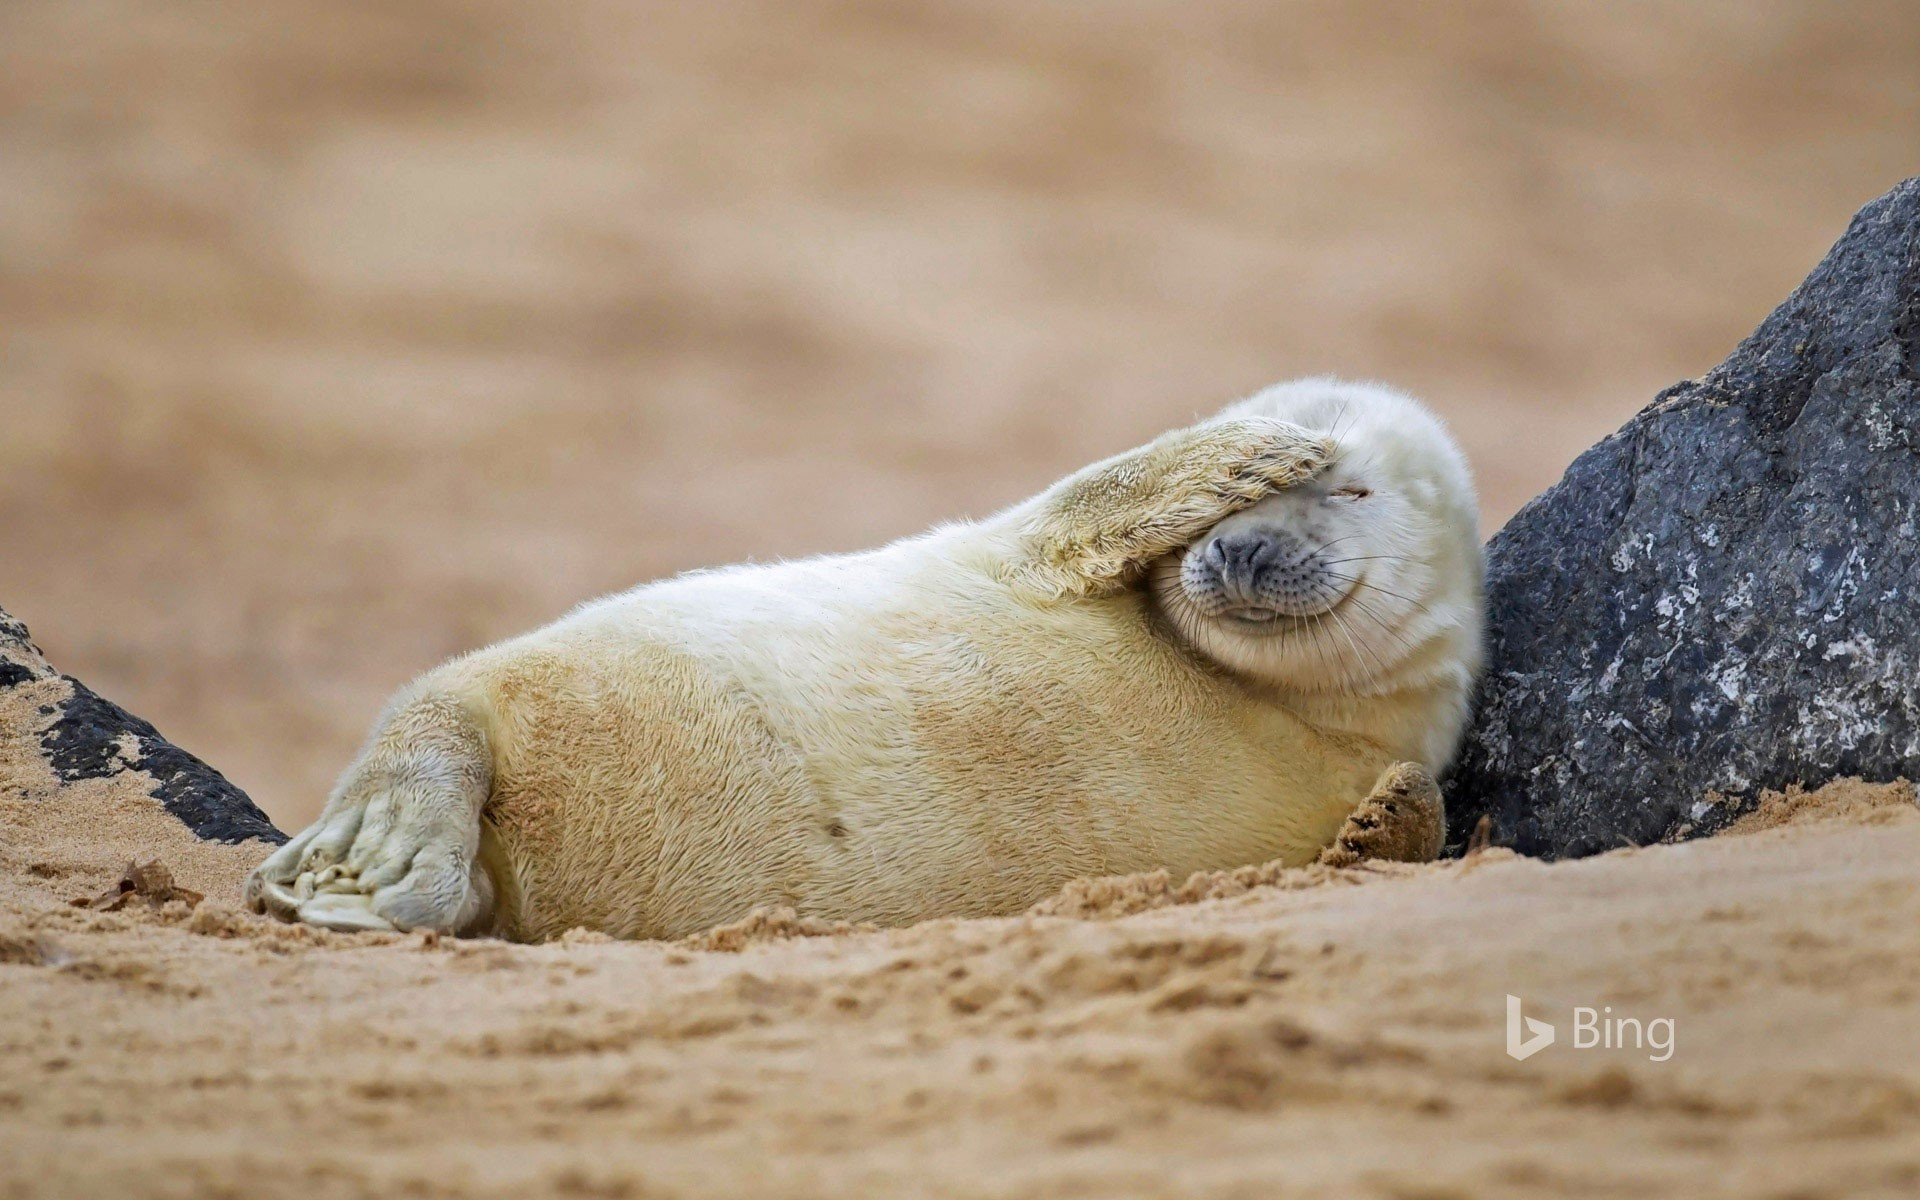 Gray seal pup resting on a beach in Blakeney National Nature Reserve, England